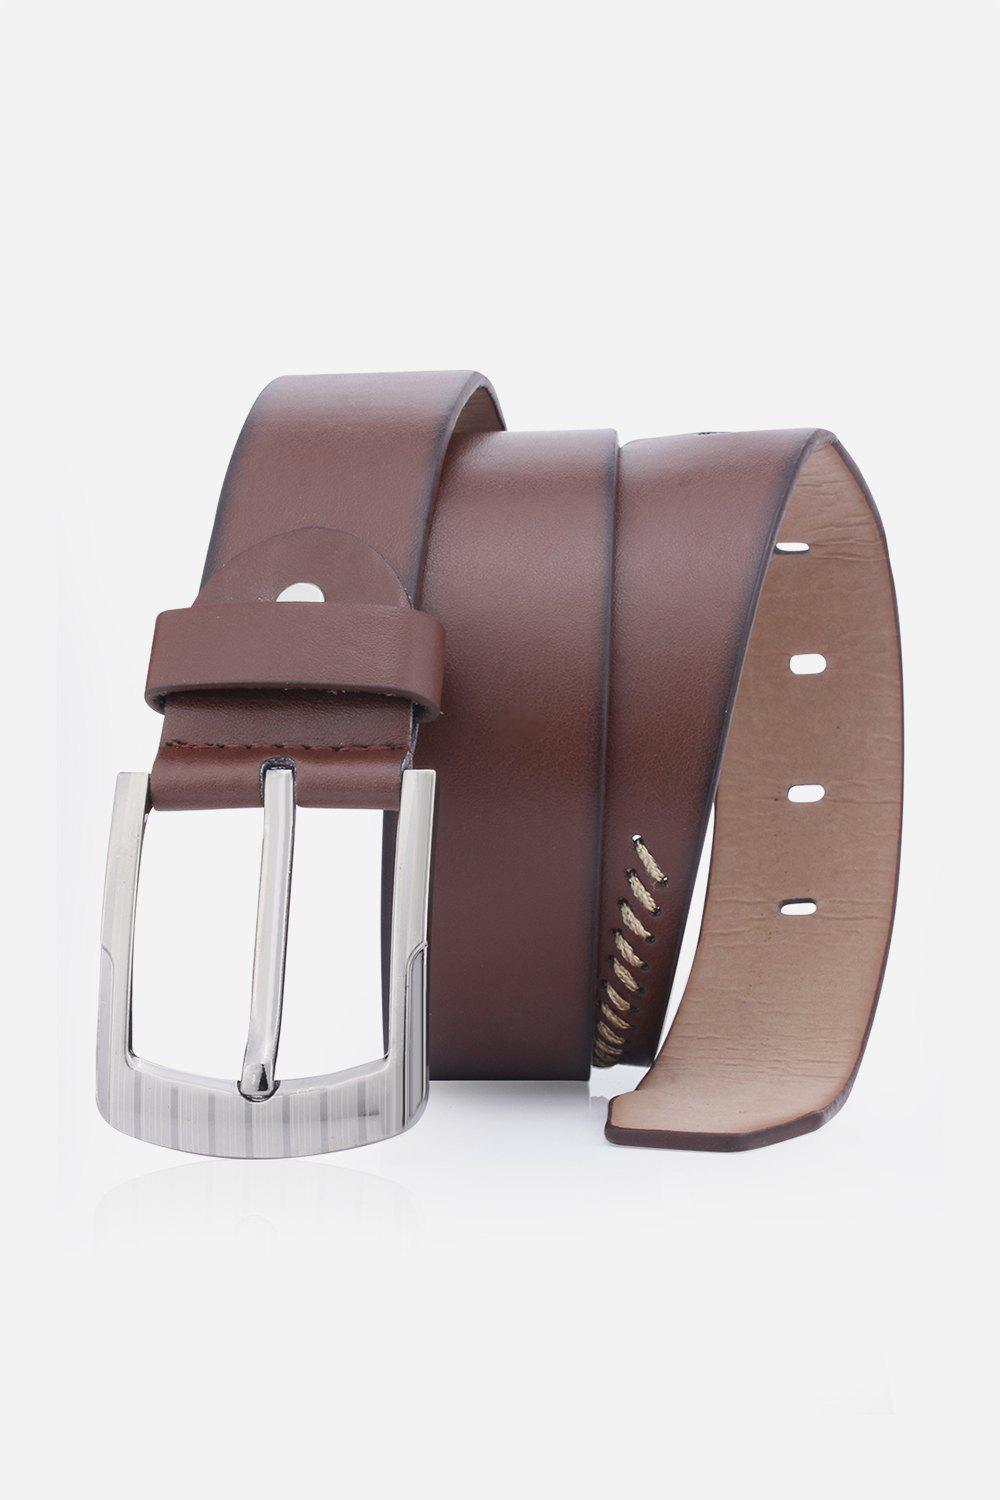 Ruban de couture rétro Wide Belt - café